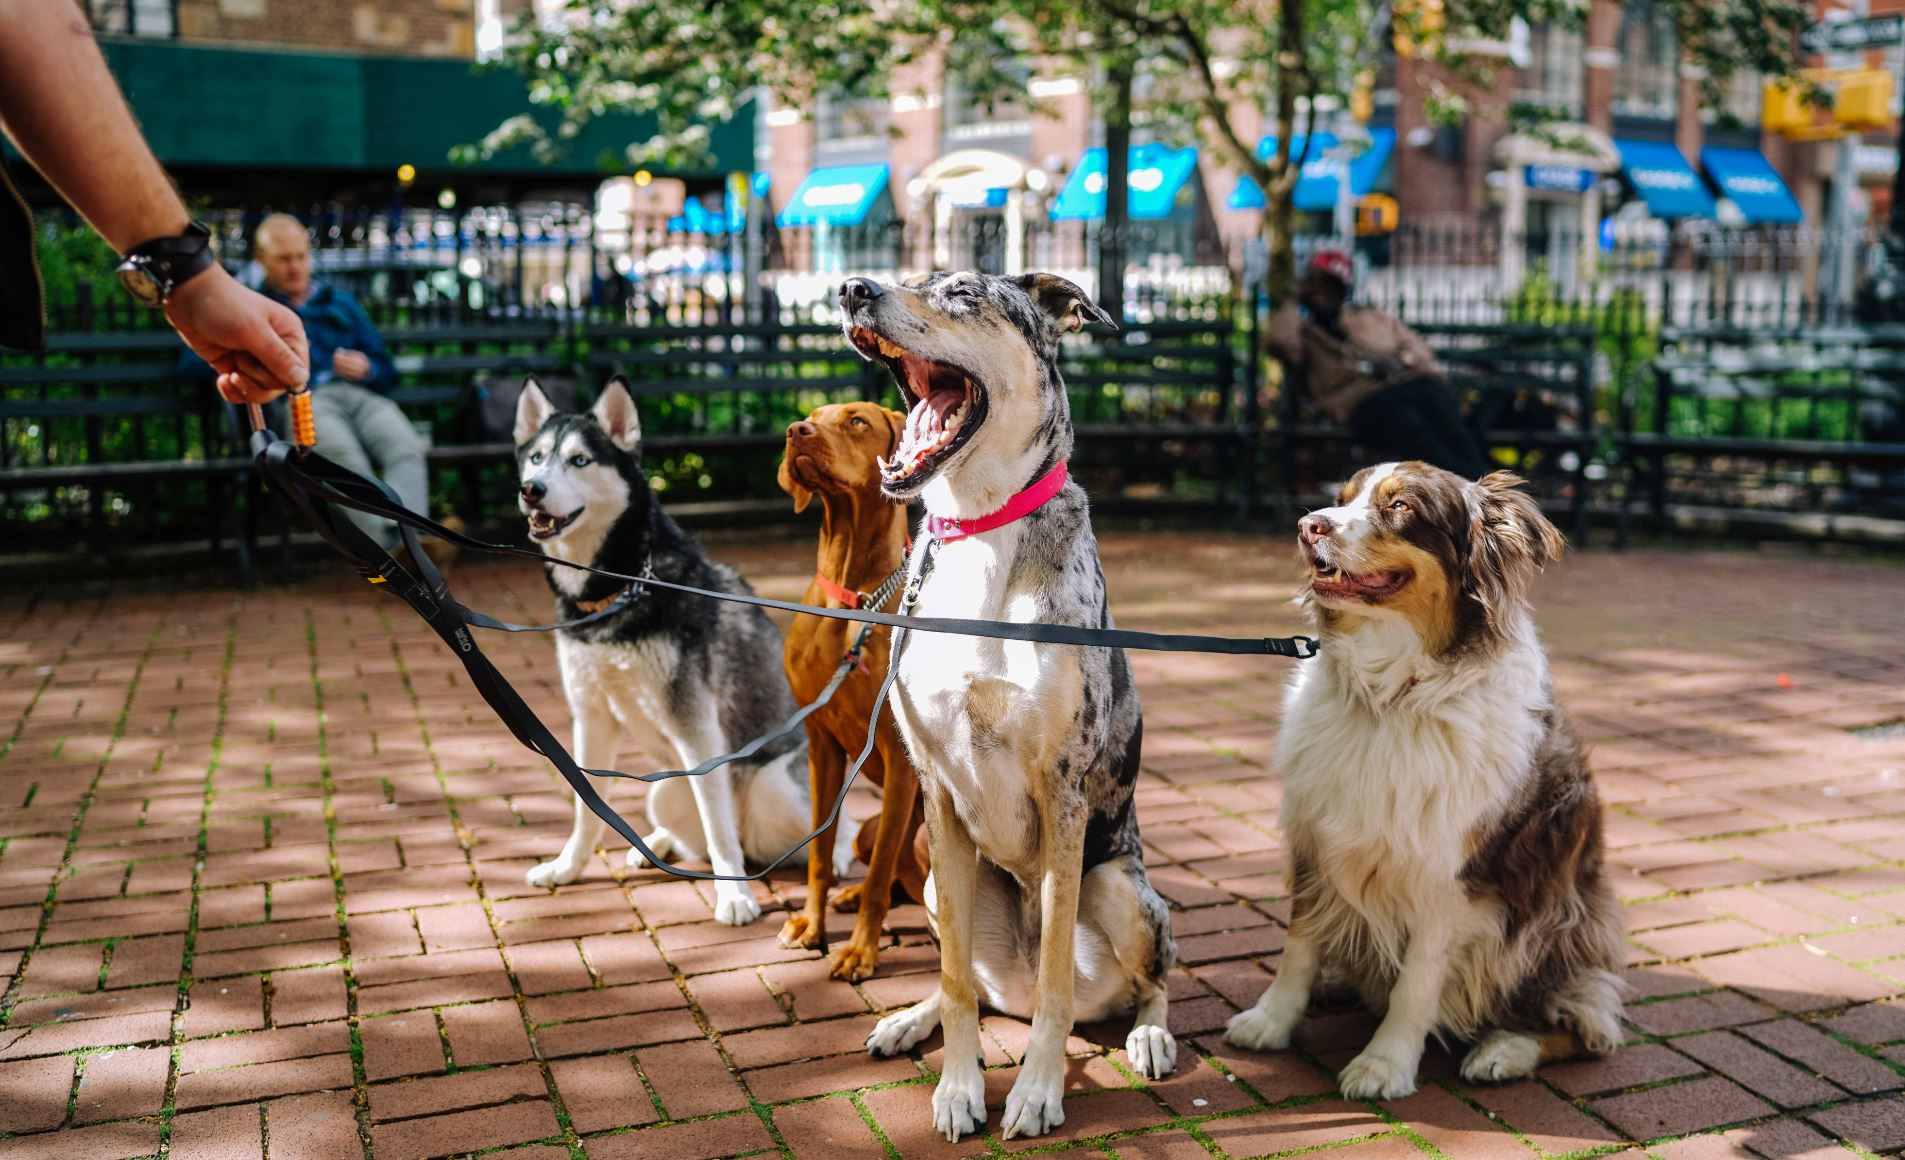 In addition to the health benefits of physical activity, walking your dog has many social and community benefits. - Image Credit:  Matt Nelson via Unsplash